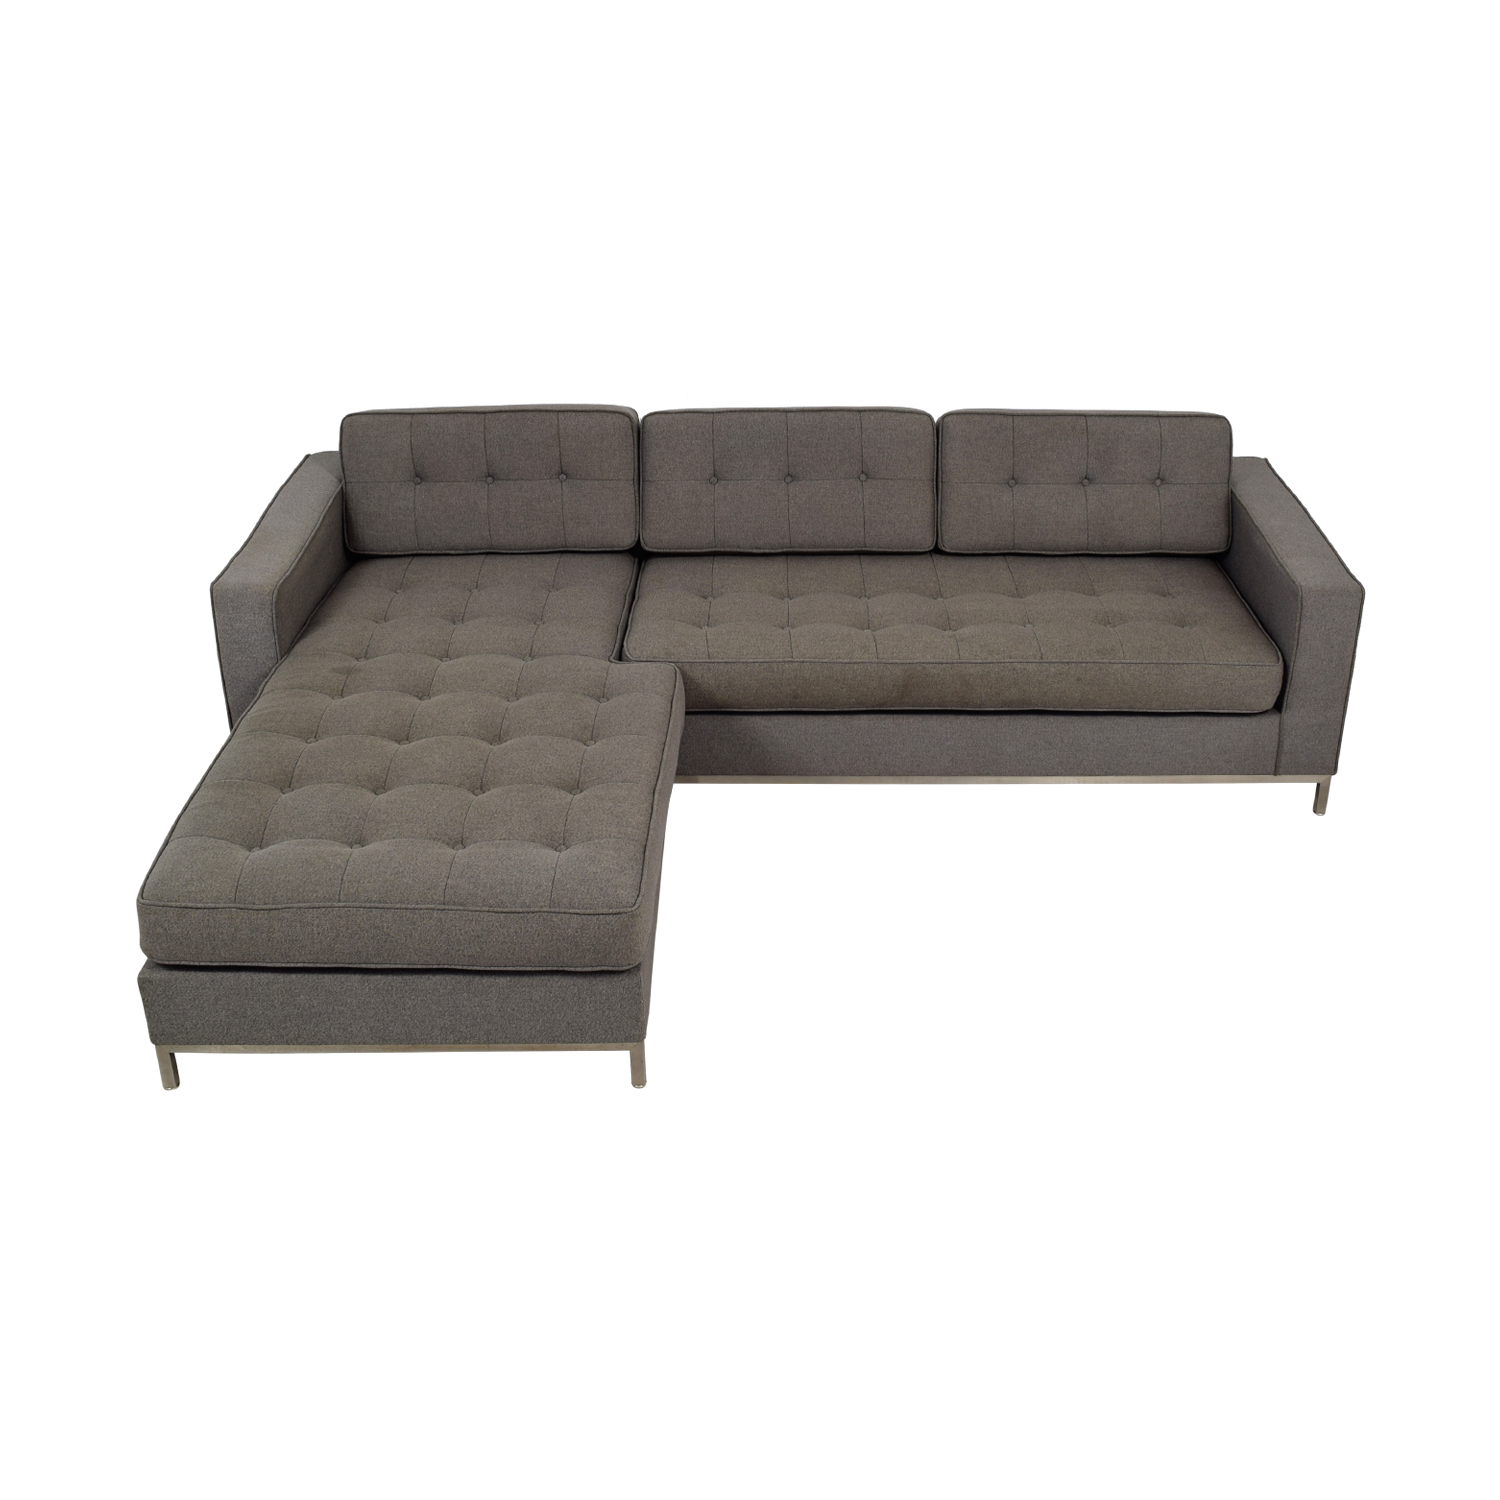 Gus Modern Gus Modern Jane Bi-Sectional on sale